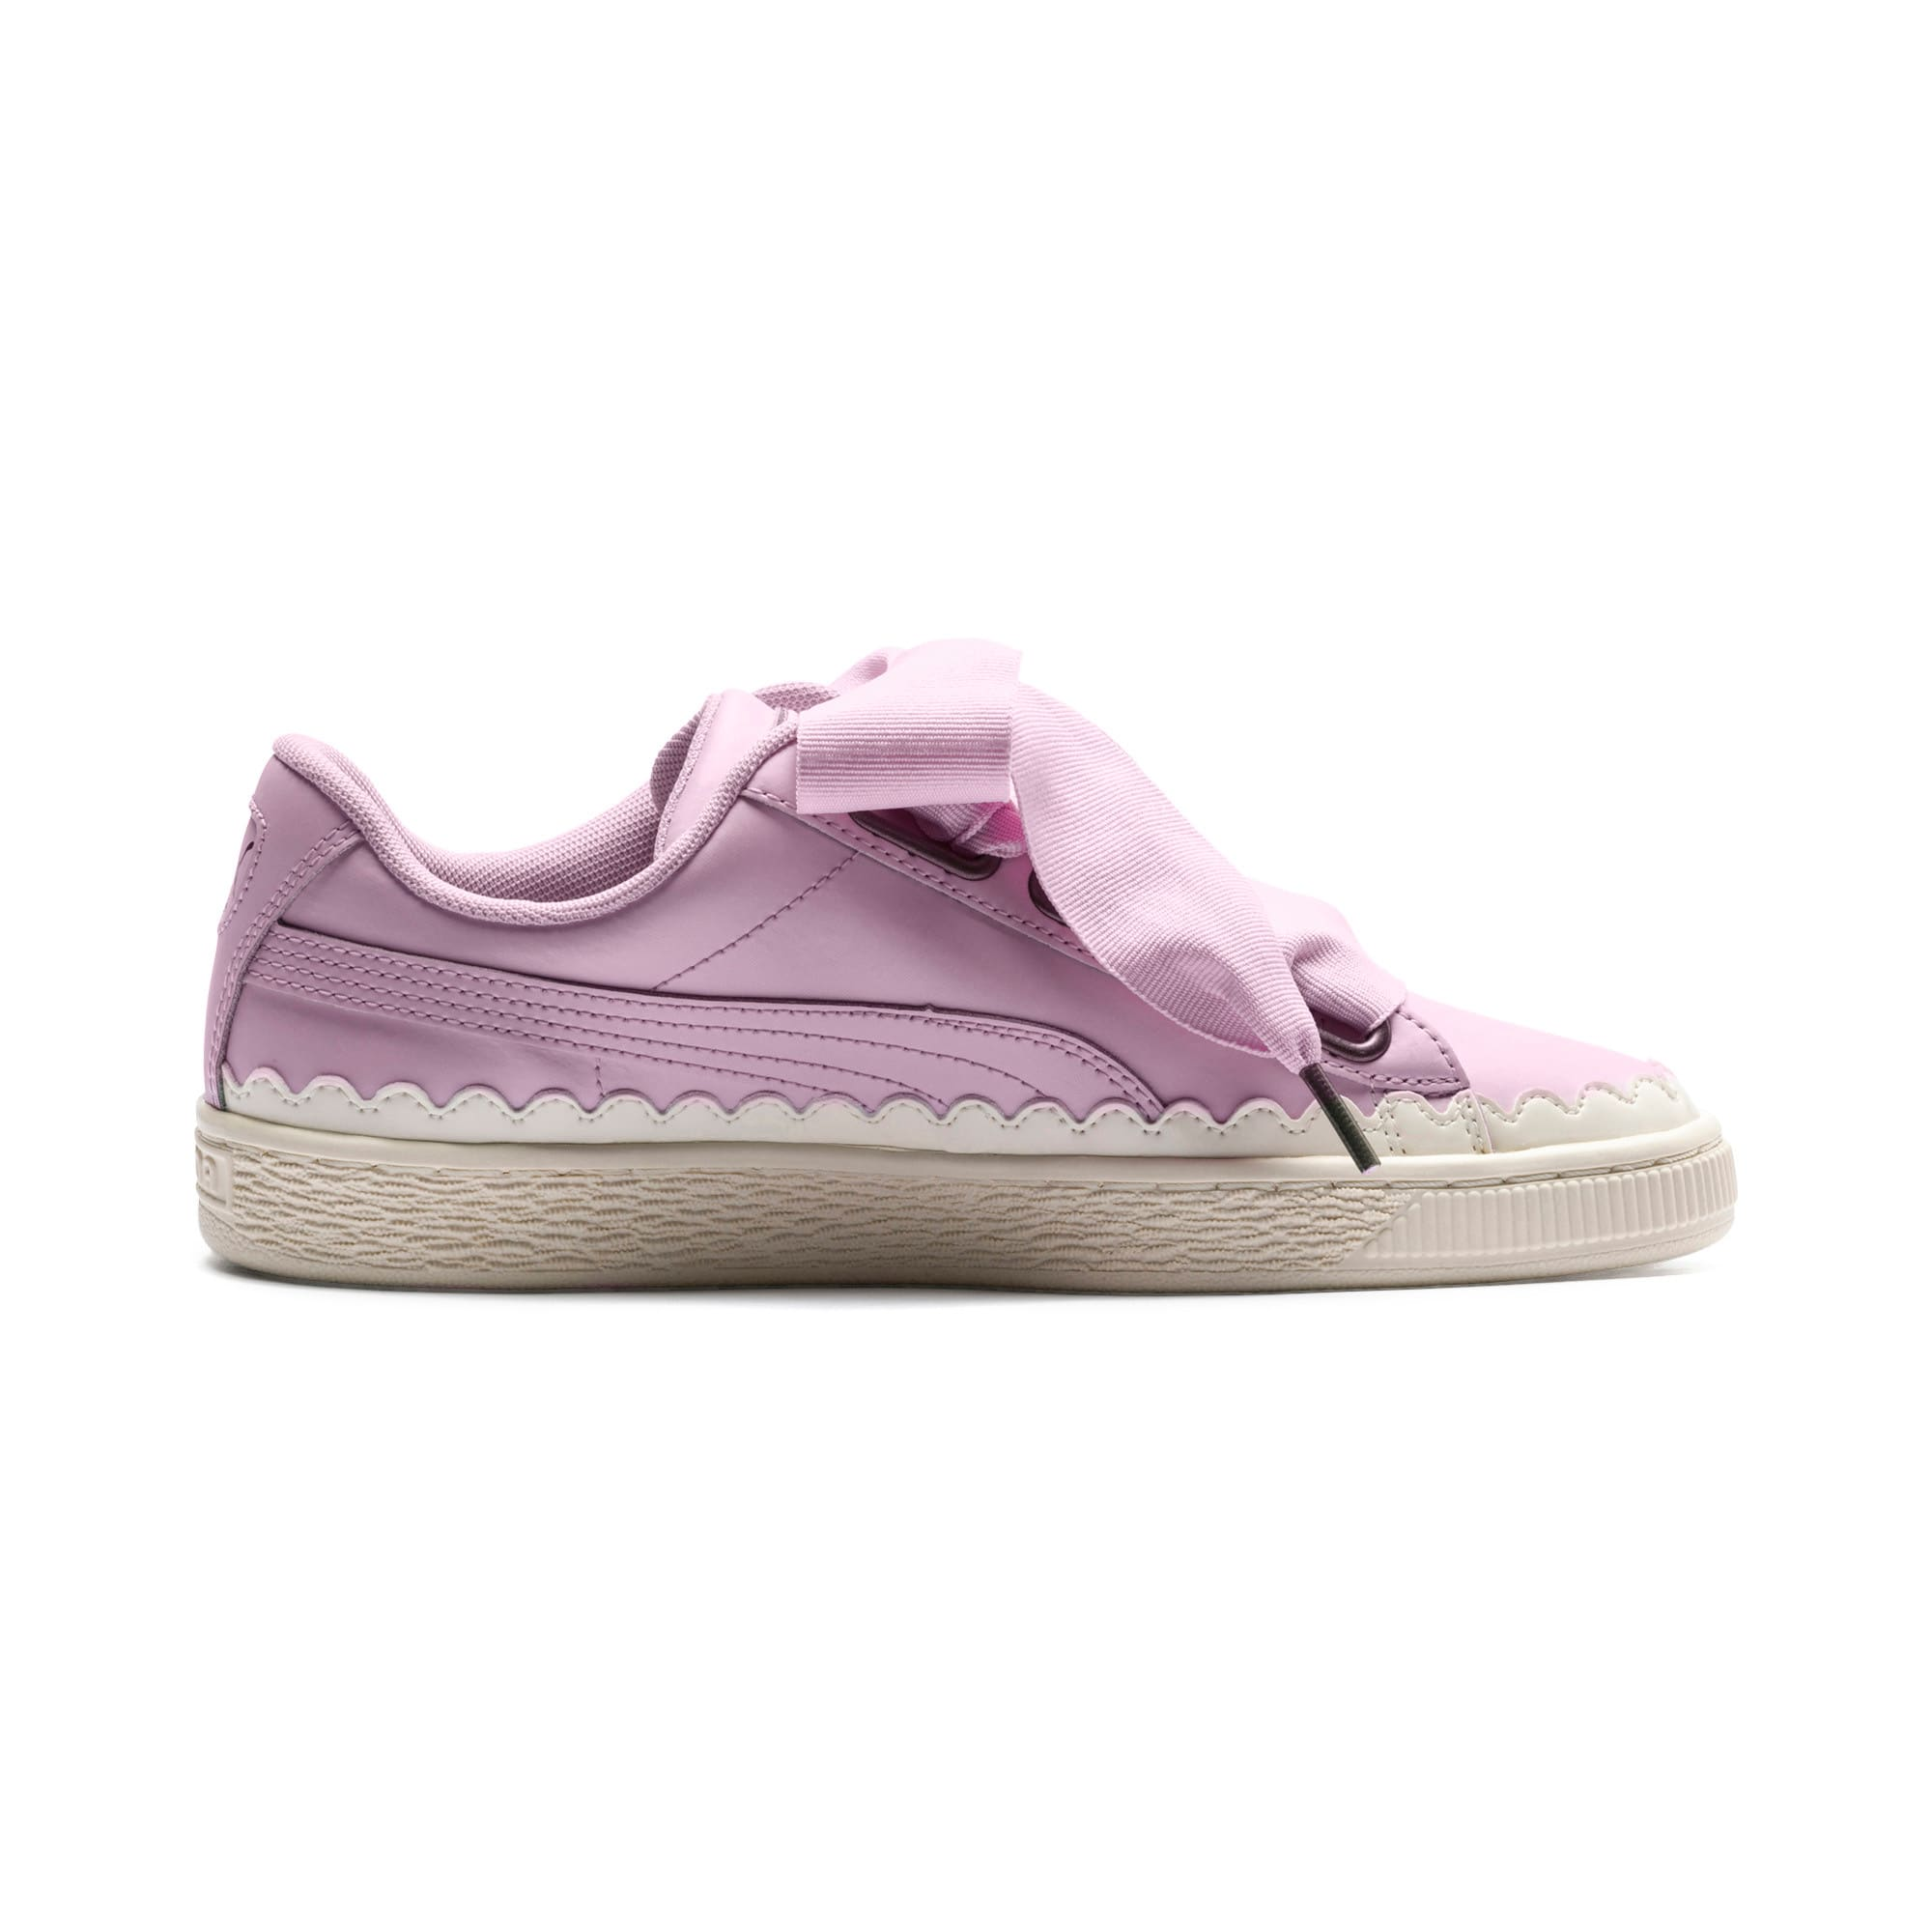 Thumbnail 5 of Basket Heart Scallop Women's Trainers, Winsome Orchid, medium-IND